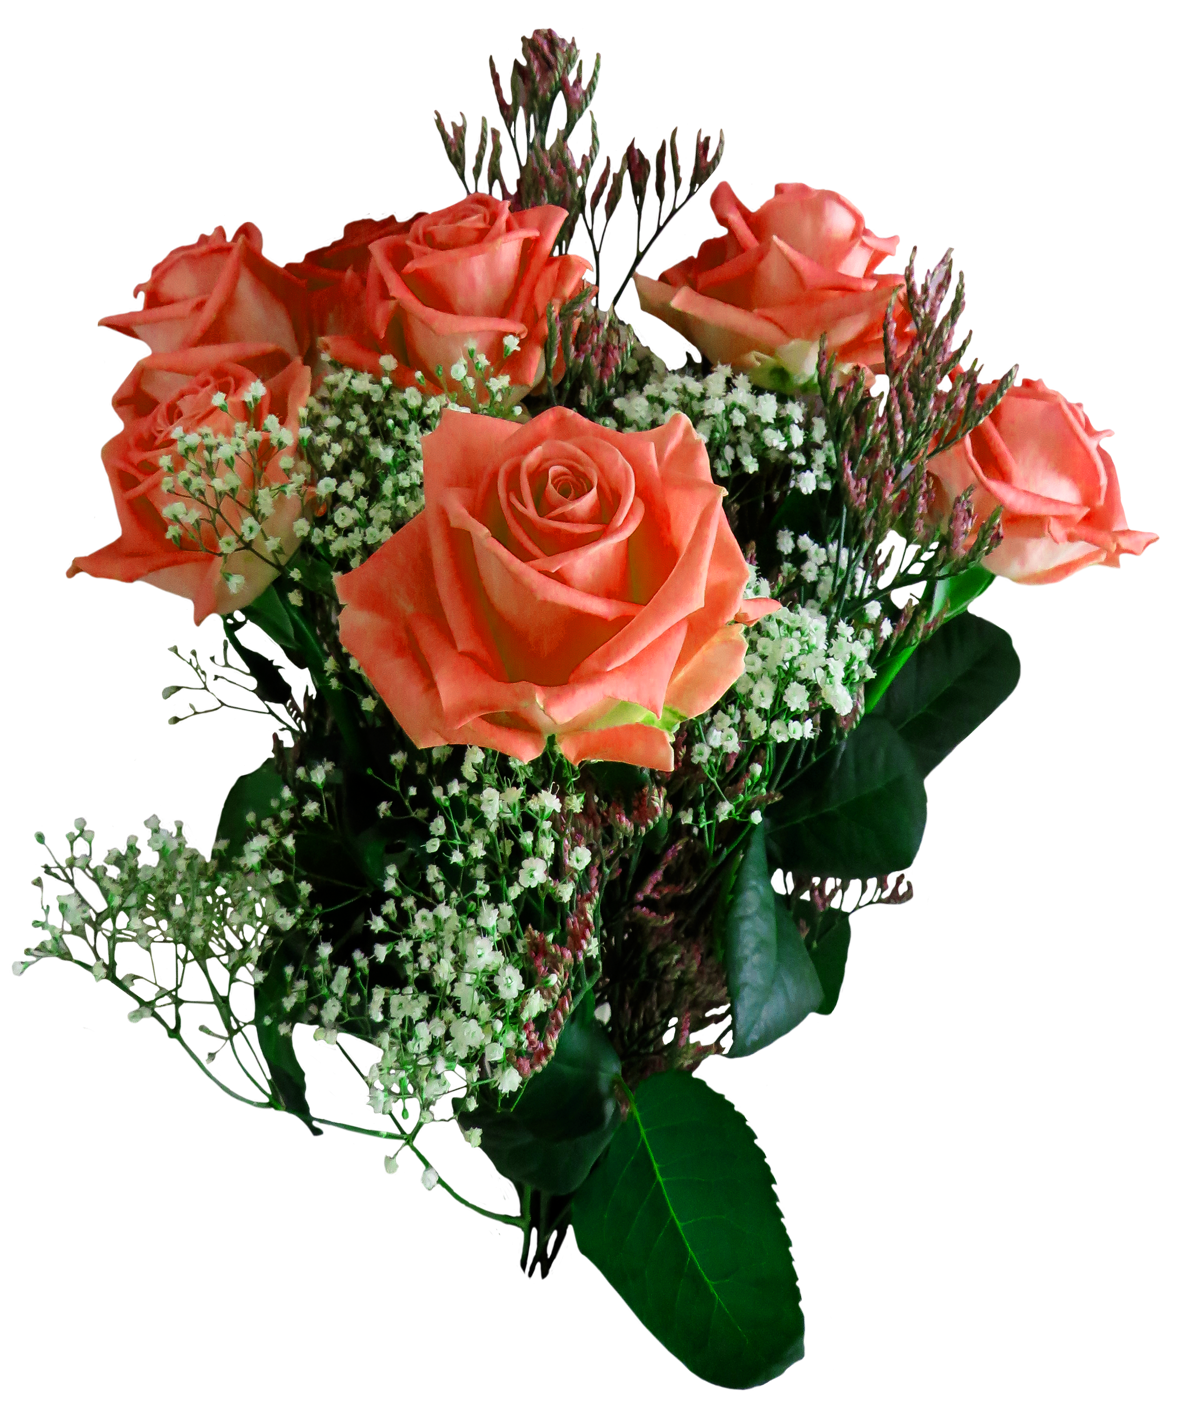 Pin By Charudeal On Prosto 1 Flower Bouquet Png Rose Flower Png Flower Png Images